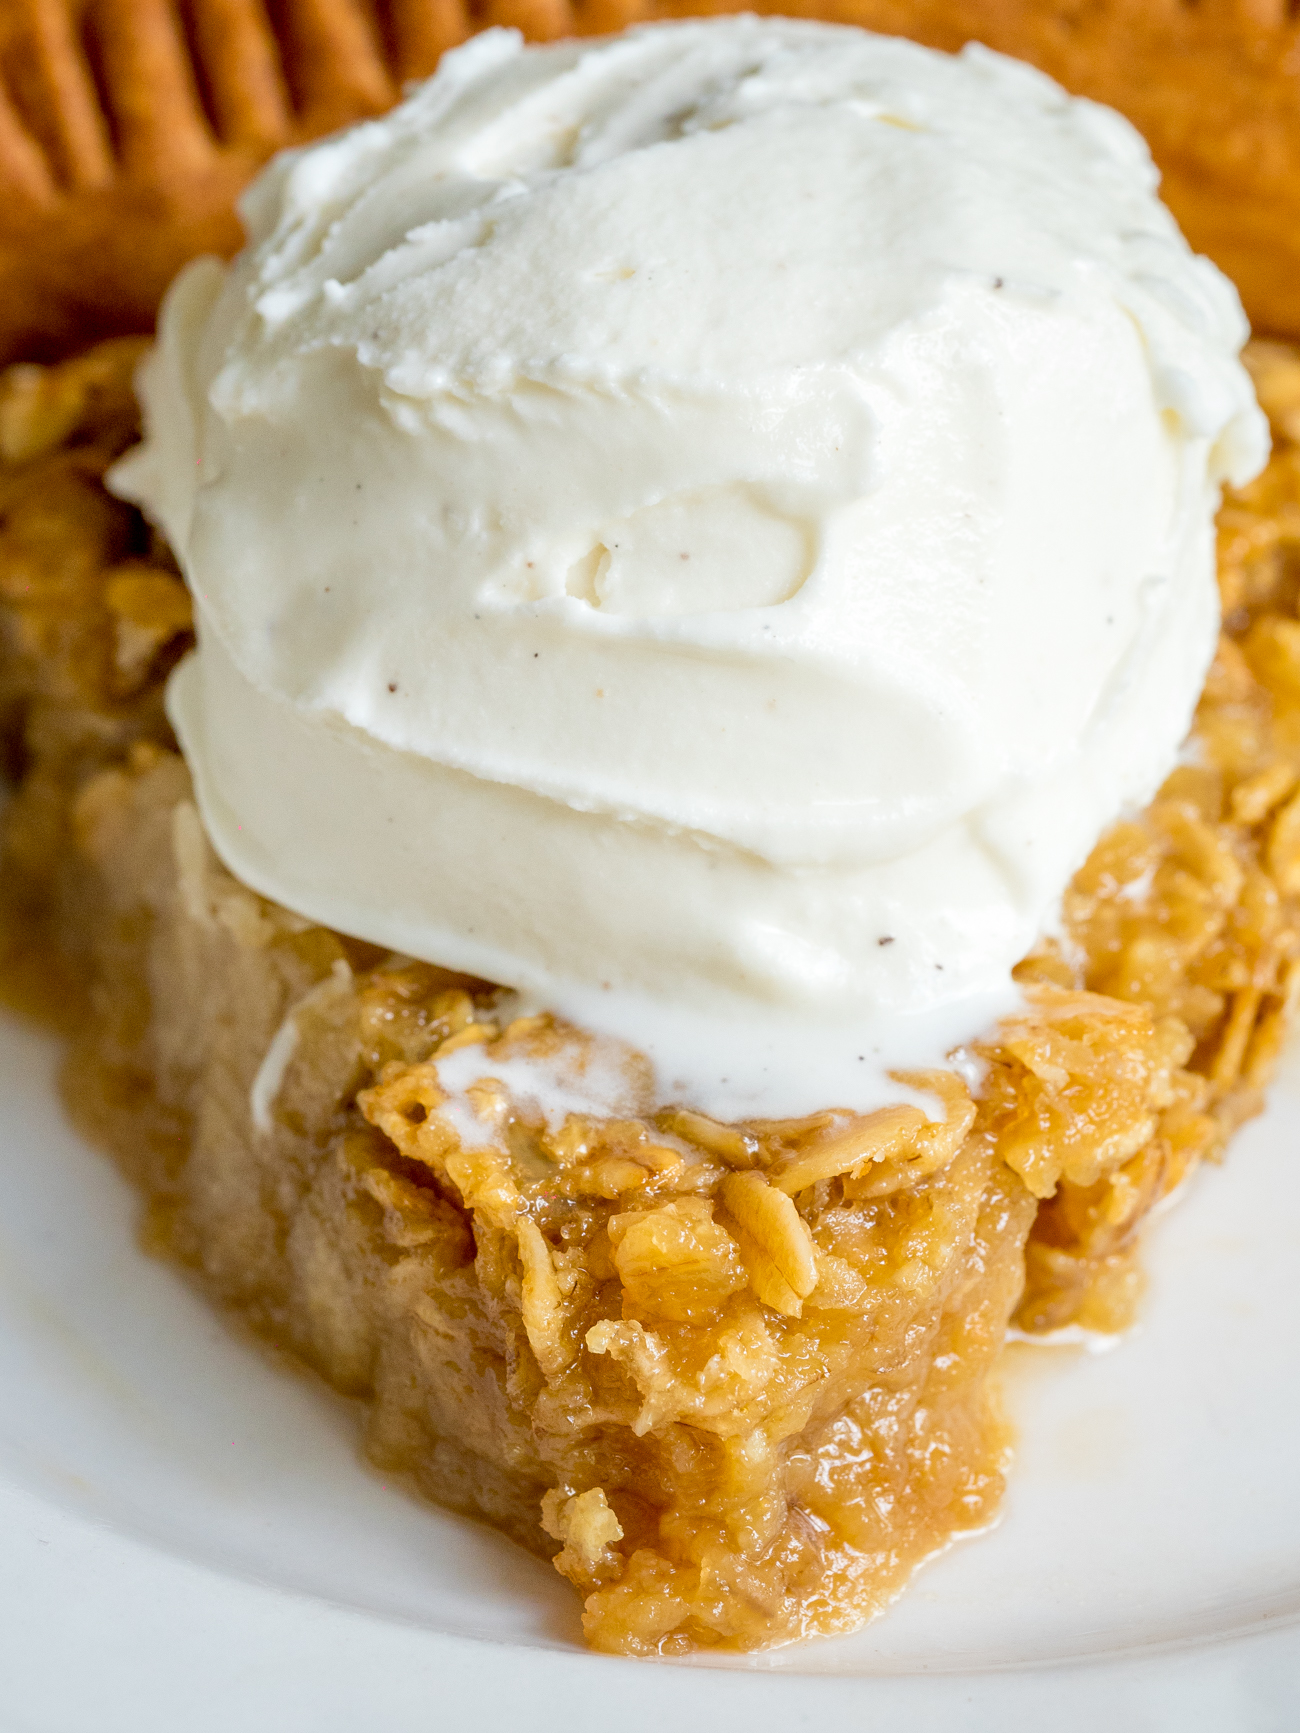 Amish Oatmeal Pie Vertical 1